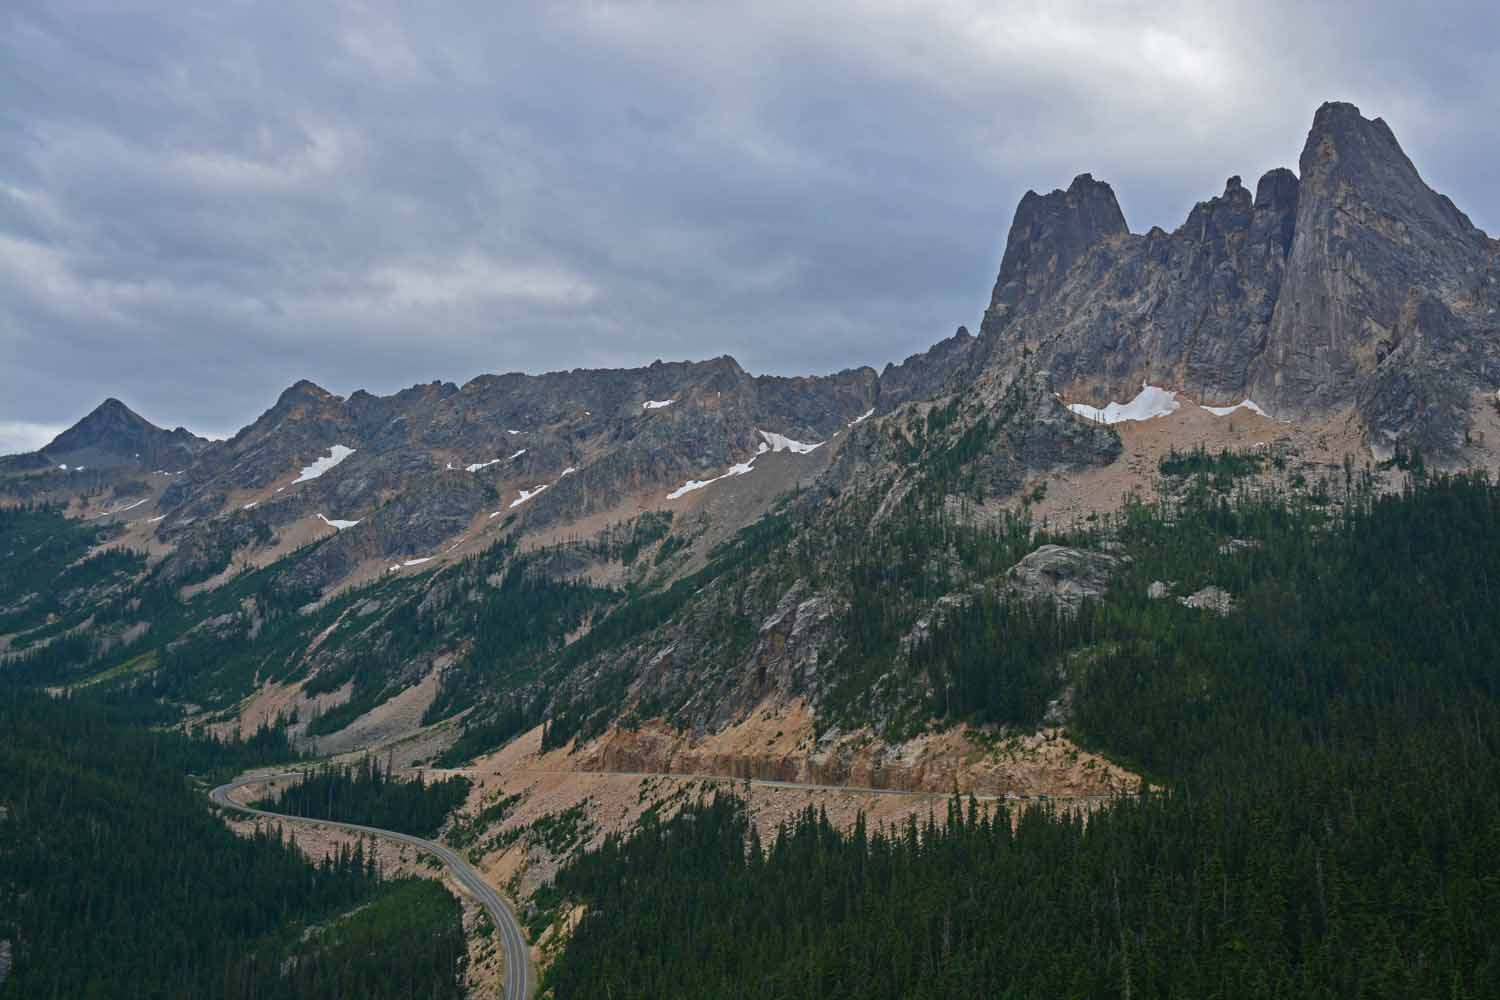 The views are best on the Cascades Highway driving west